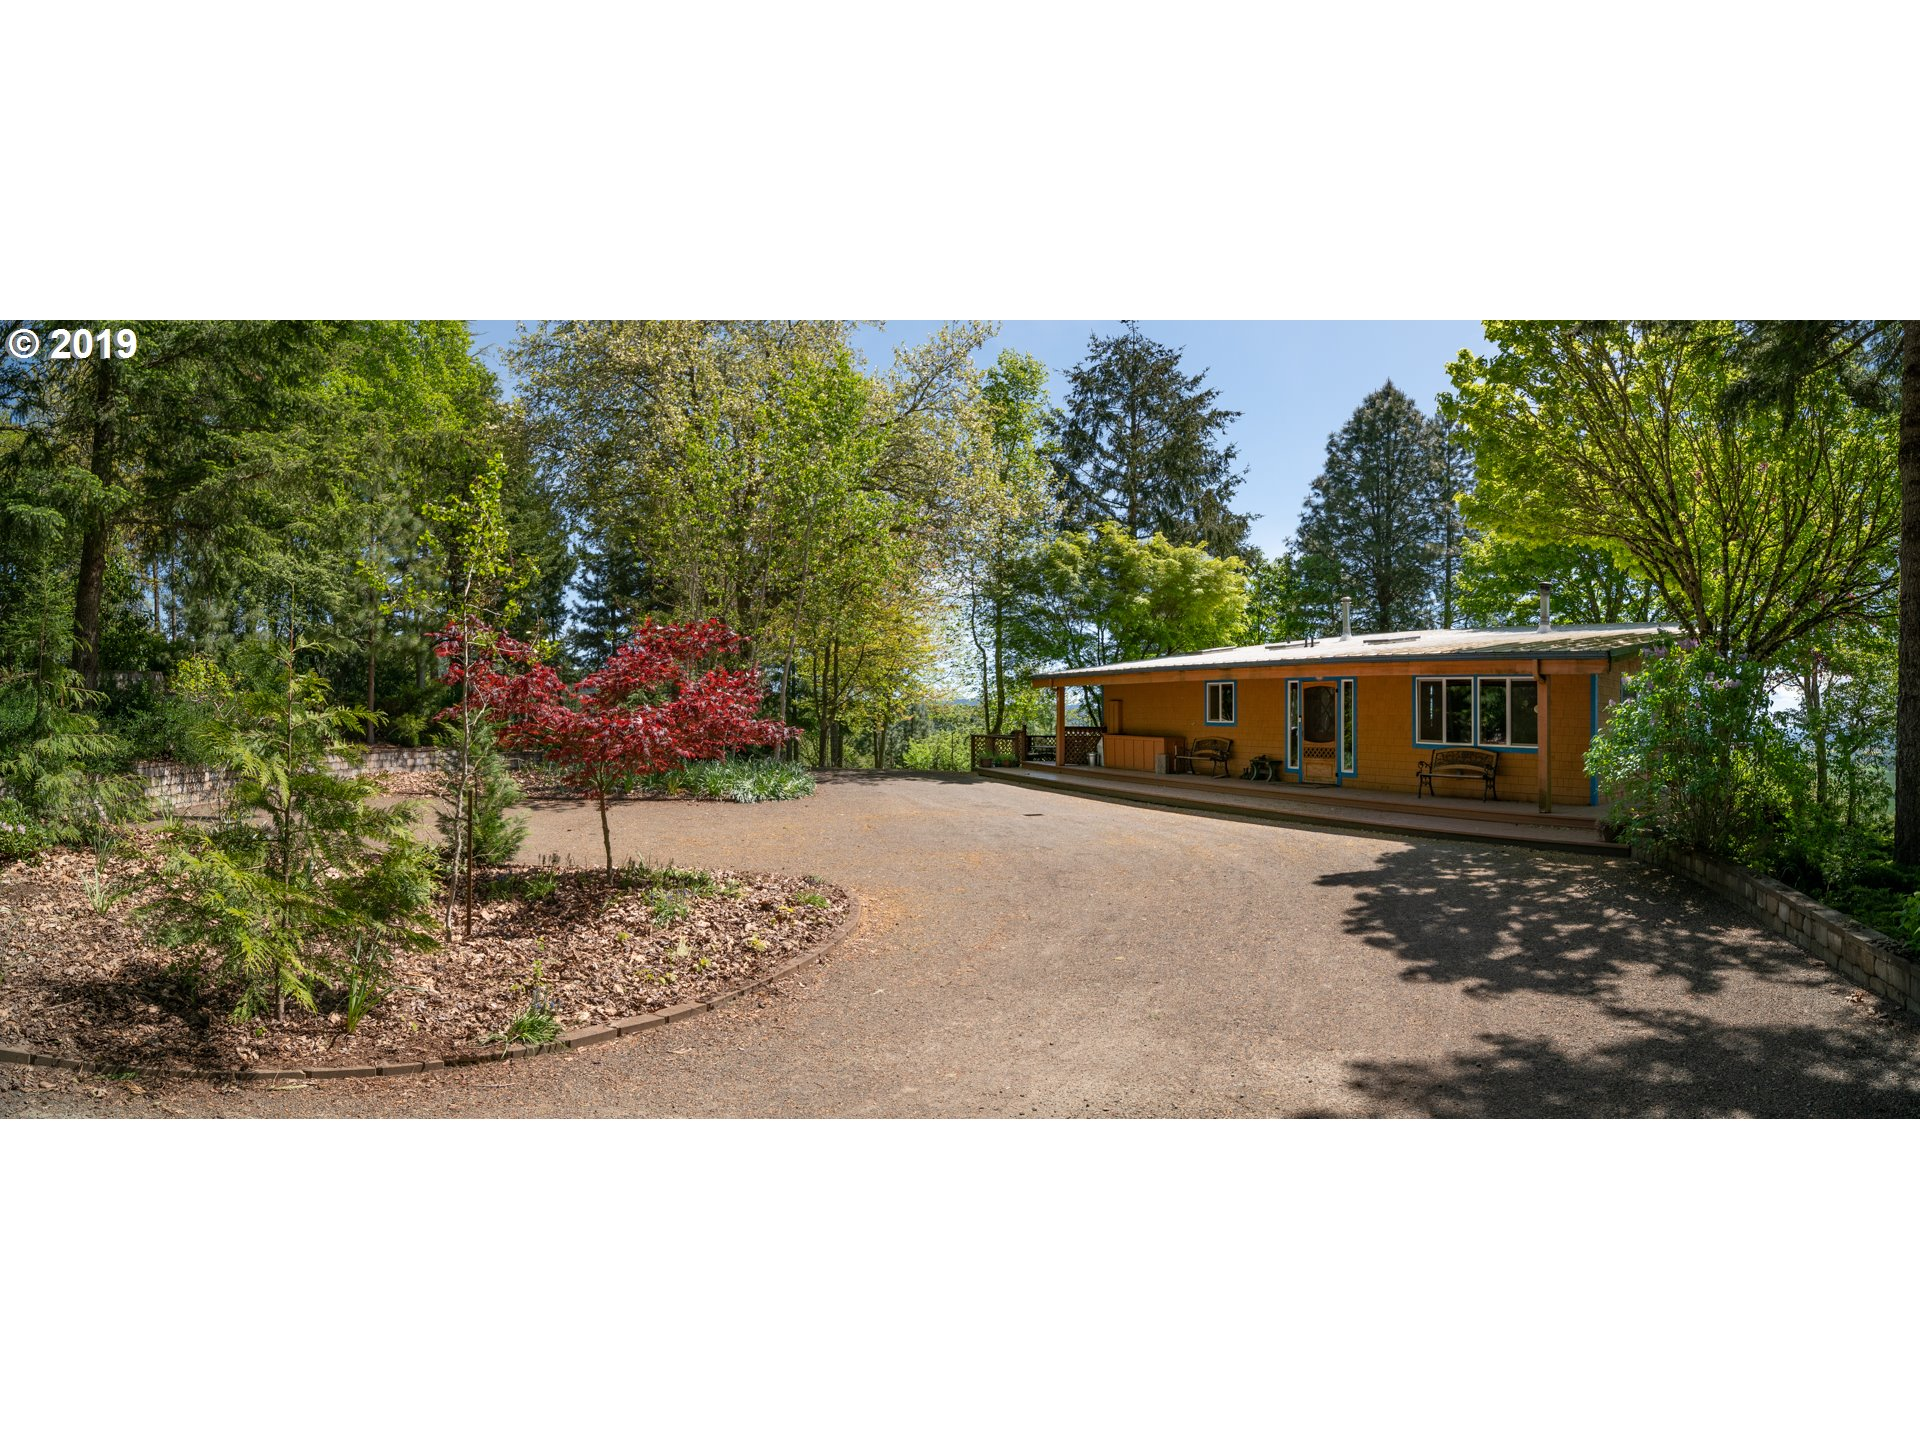 MLS #19229485 - 8750 North Oak Grove Rd Rickreall, OR 97371